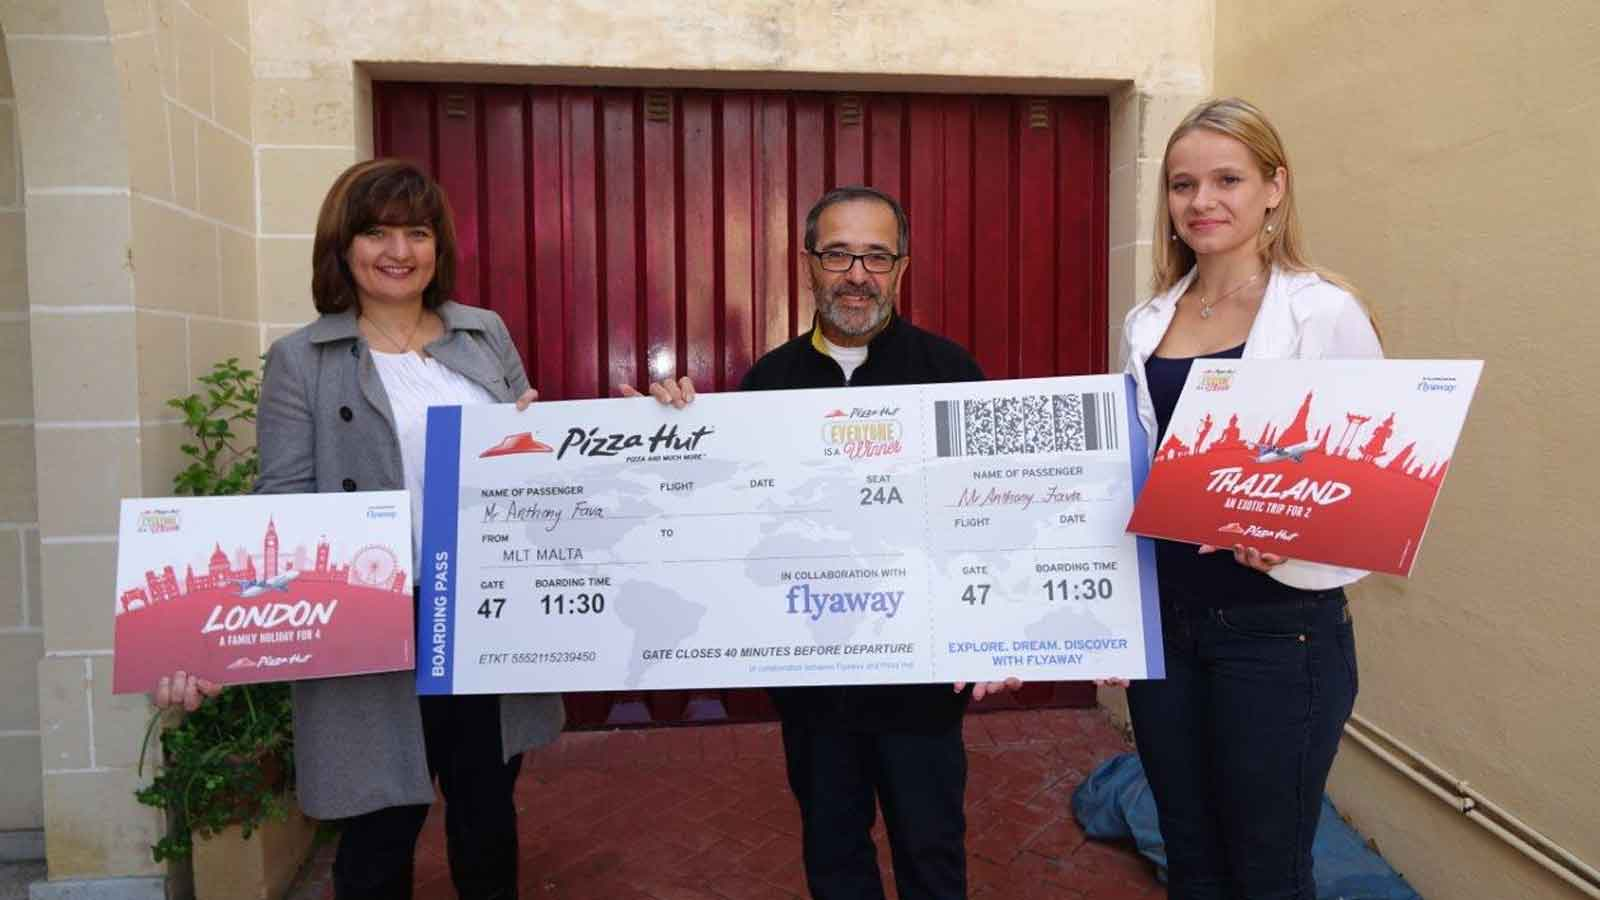 Winner drawn for the Pizza Hut 'Everyone is a Winner' Campaign